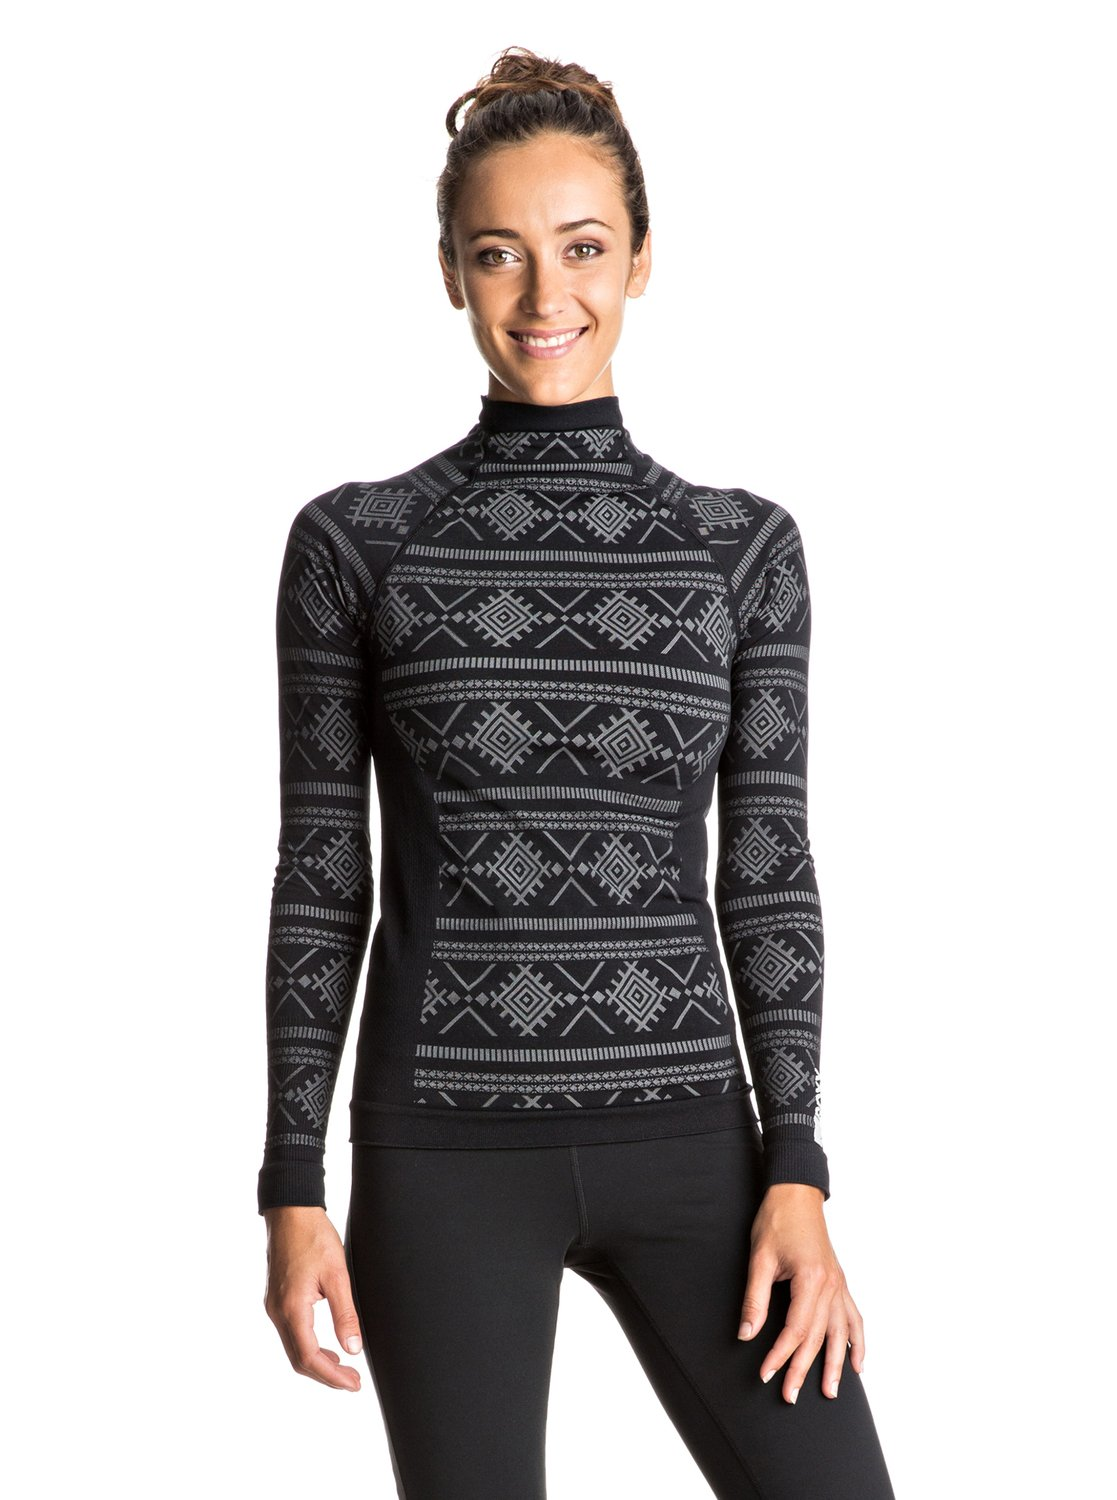 A long sleeve workout top is a must-have for high-performing women's workout clothes that support your workout. Our long sleeve shirt selections are about style that pushes you beyond your limits.